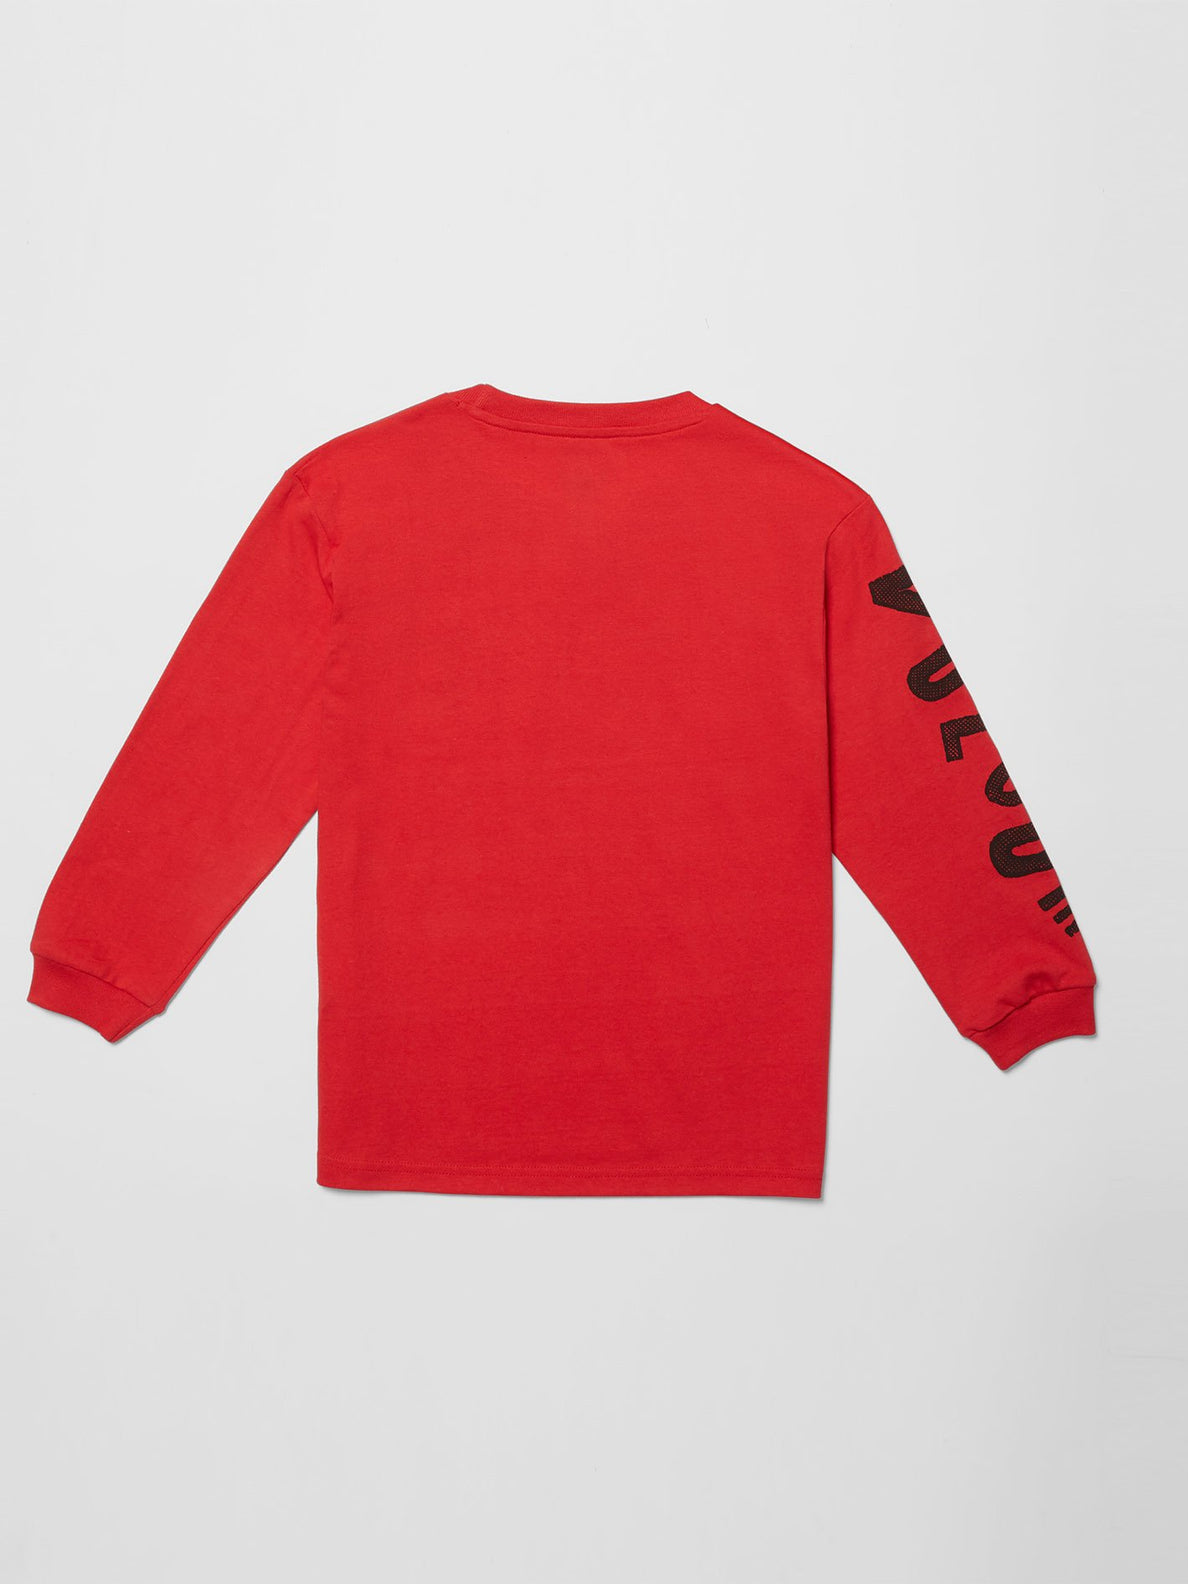 Sick 180 T-shirt - Carmine Red (C3612101_CMR) [B]